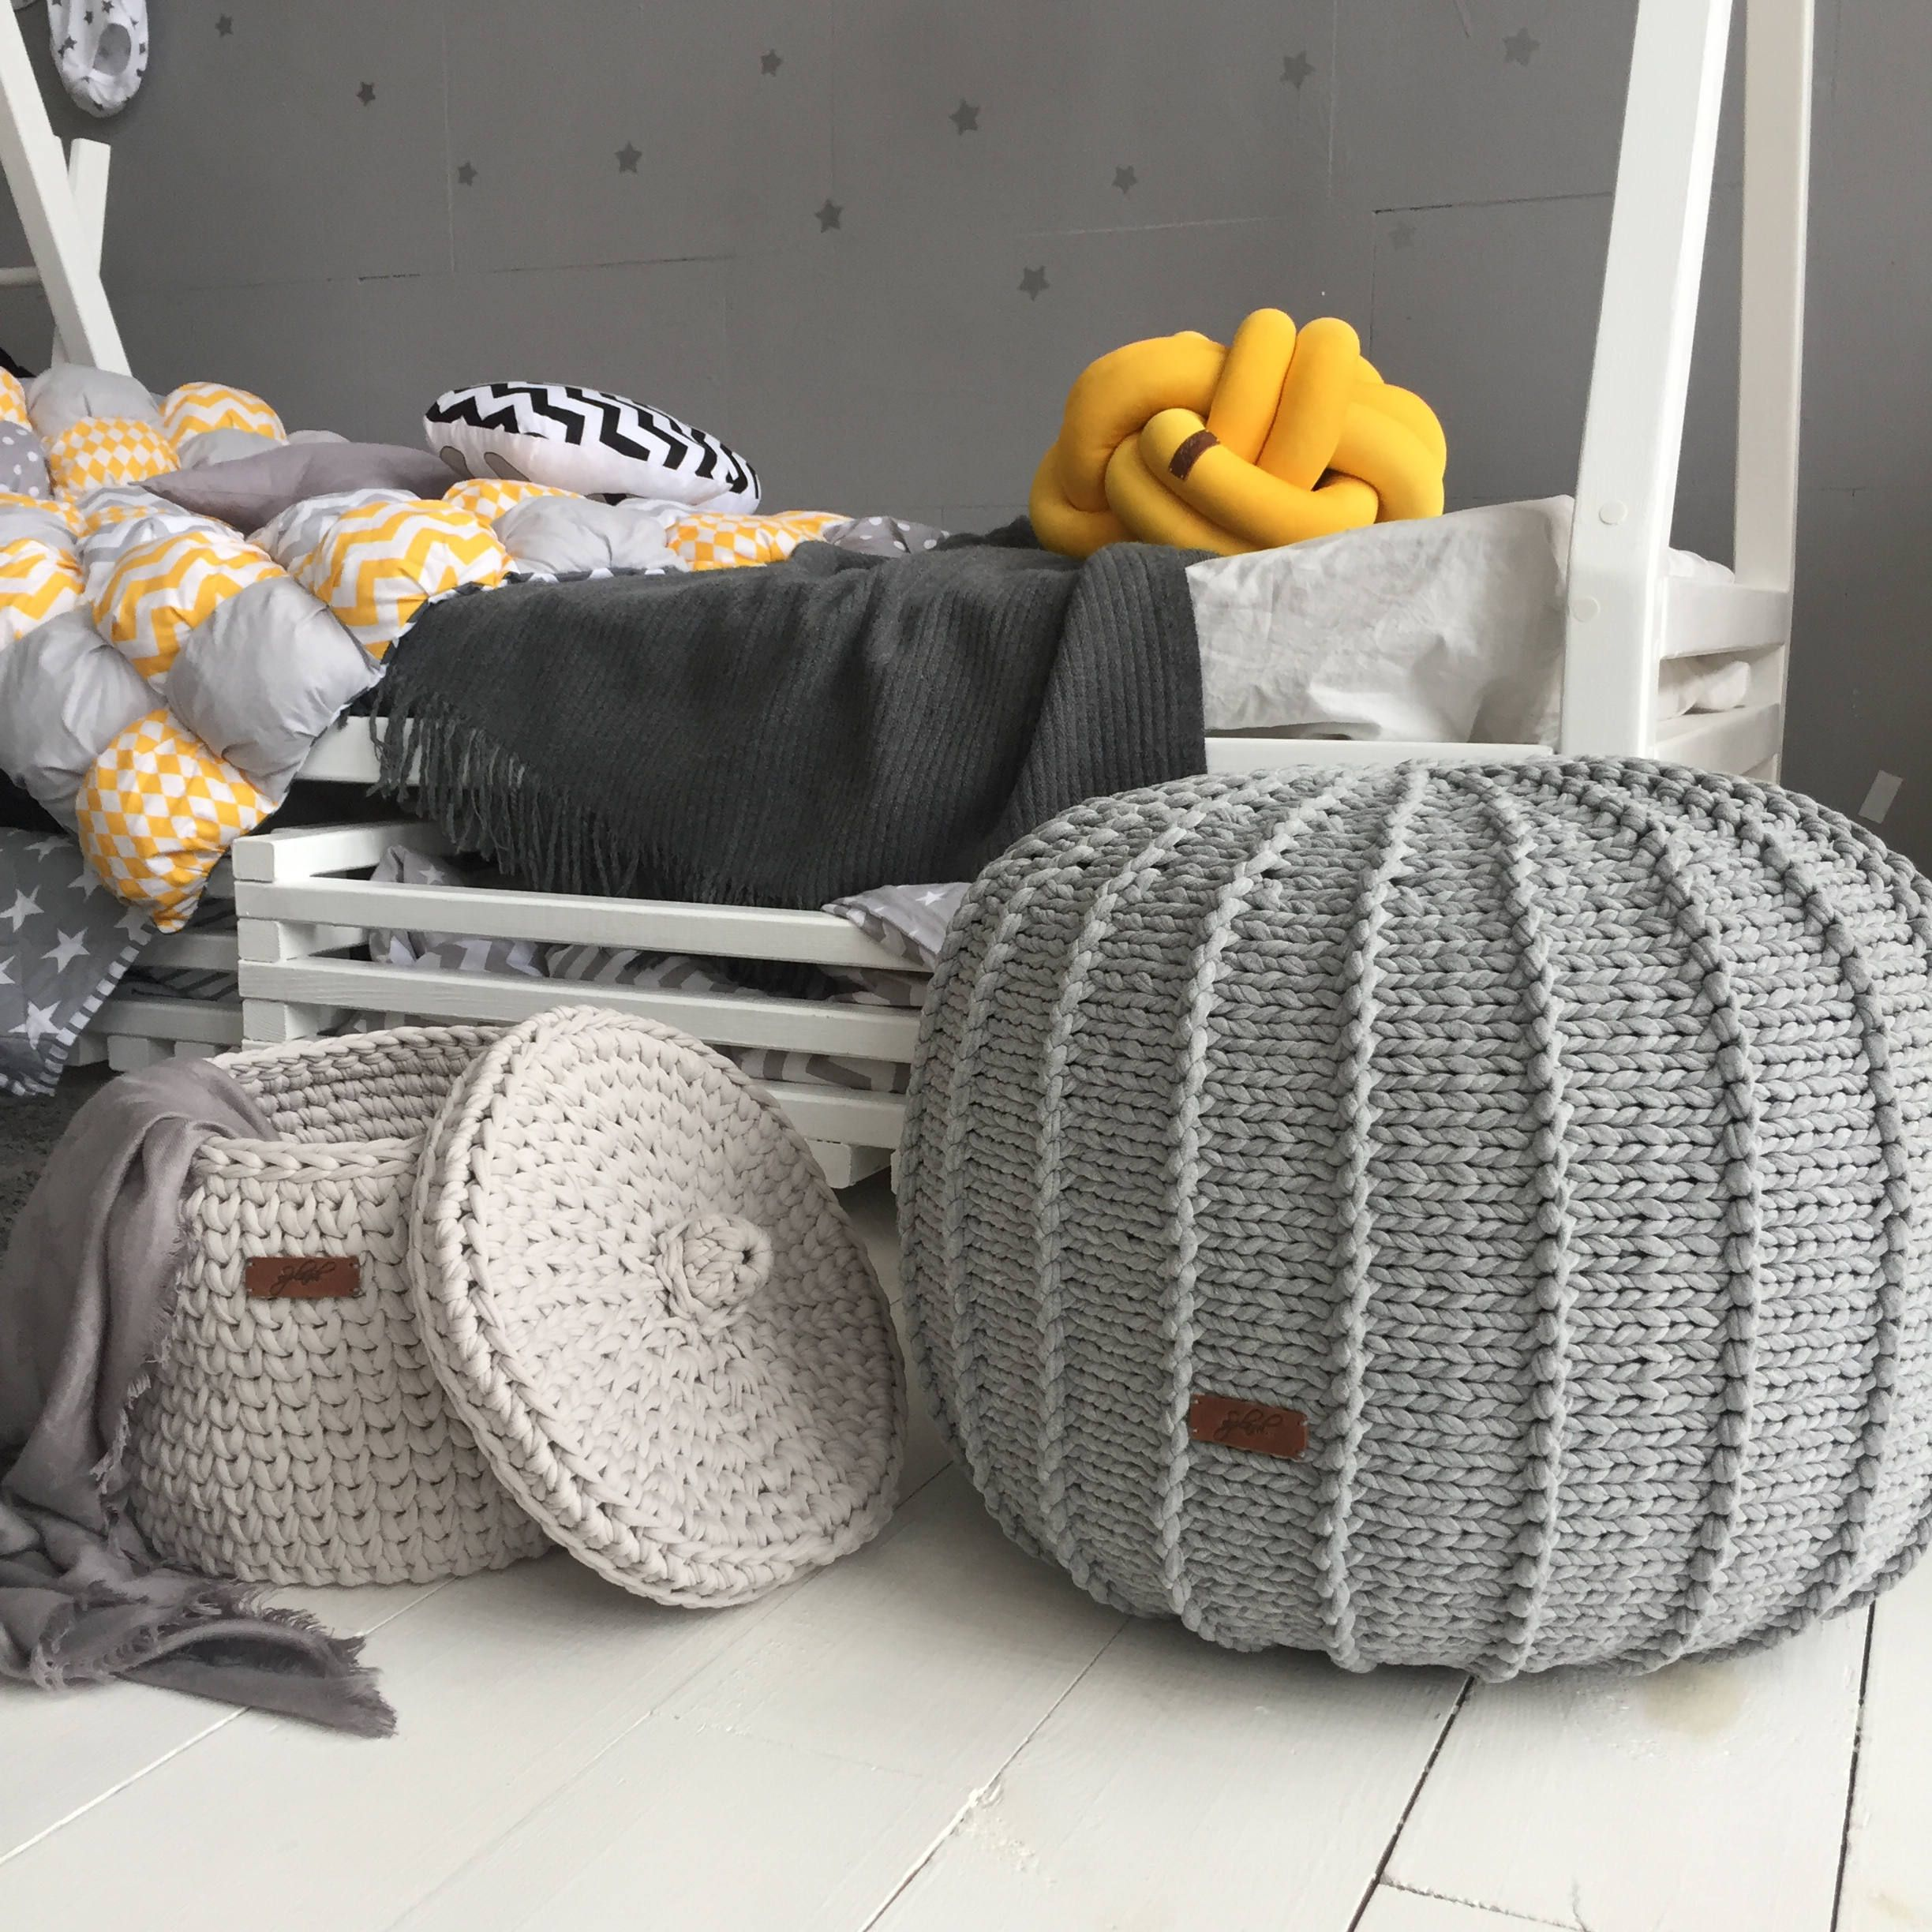 Large Pouf Ottoman Magnificent Large Grey Floor Pouf Ottoman  Knitted Pouf  Knit Pouf  Knitted Design Decoration